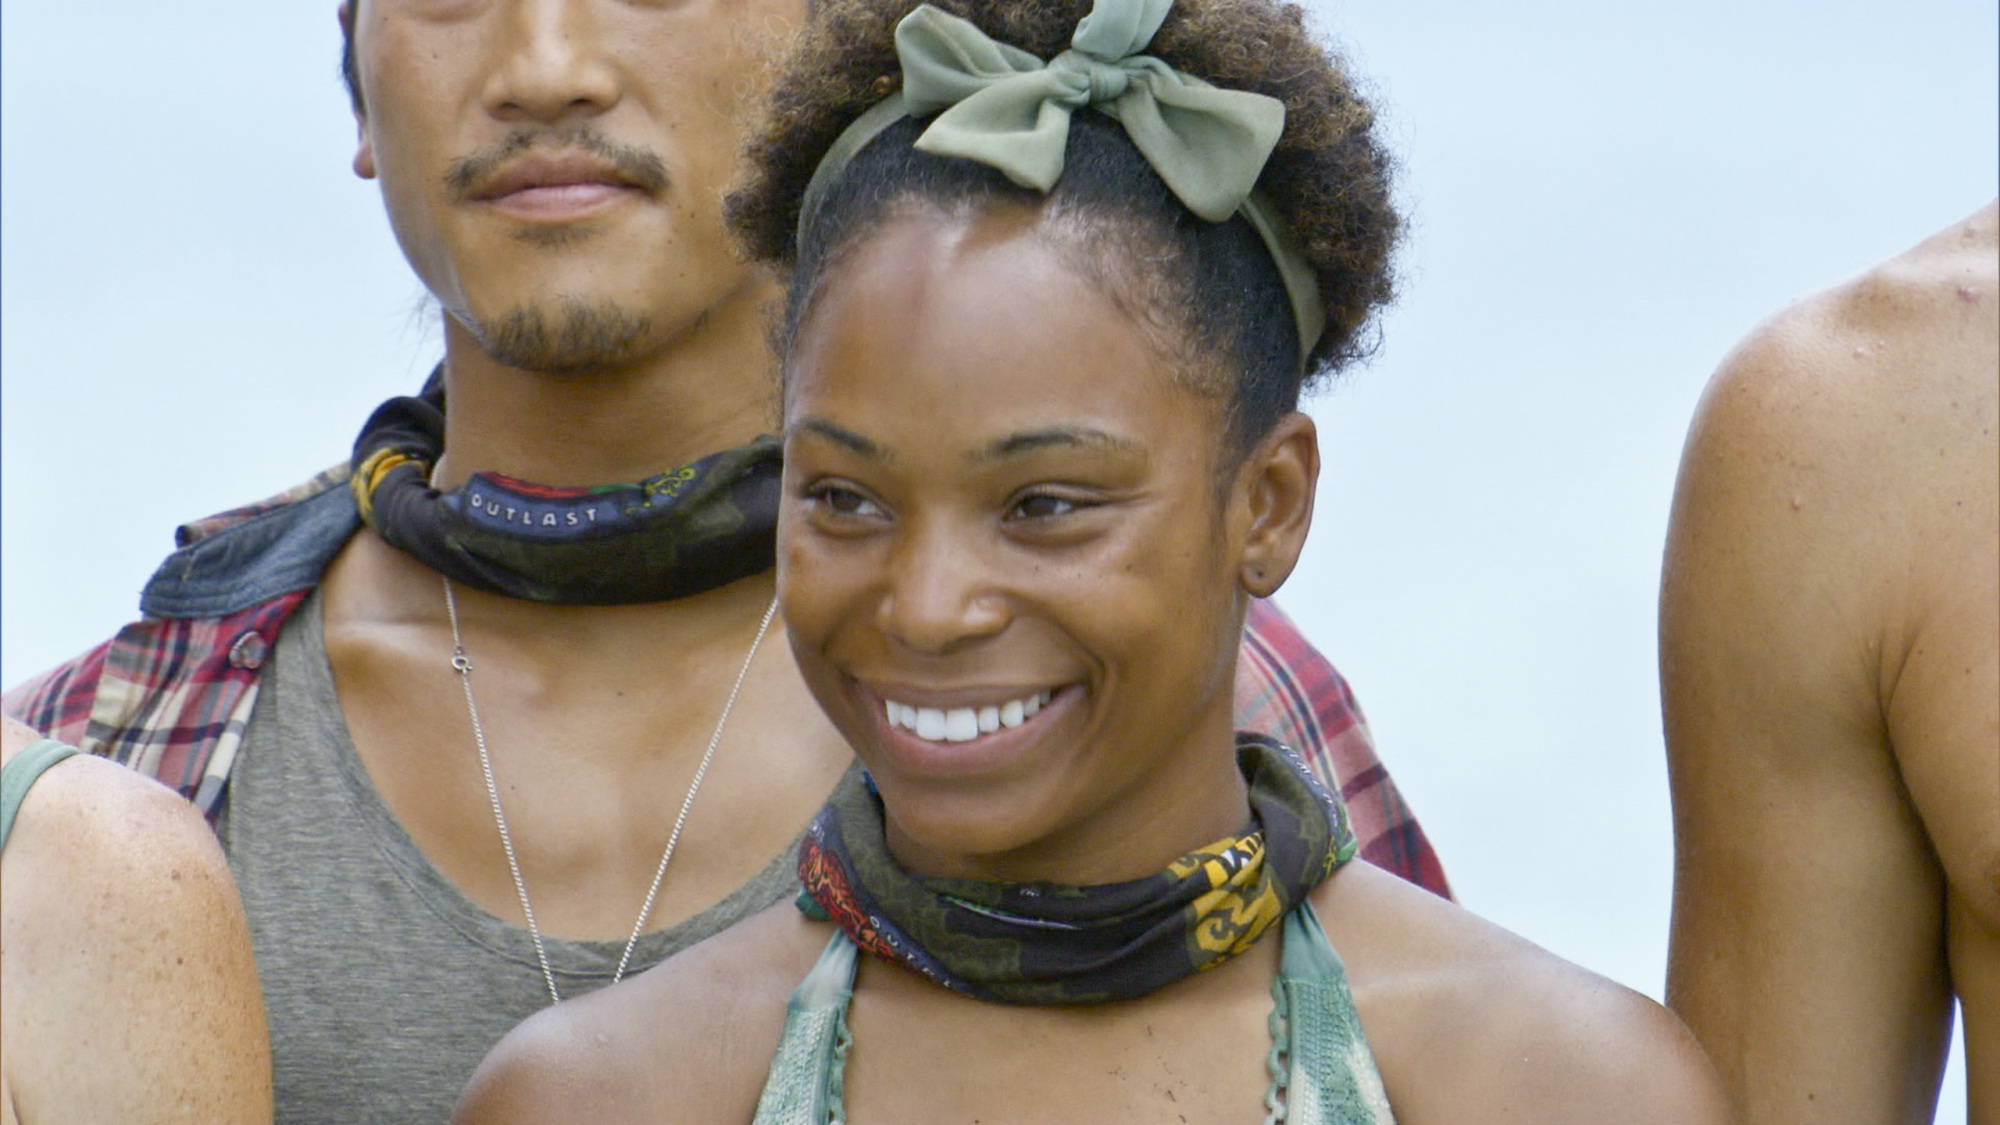 Tasha in Season 28 Episode 6